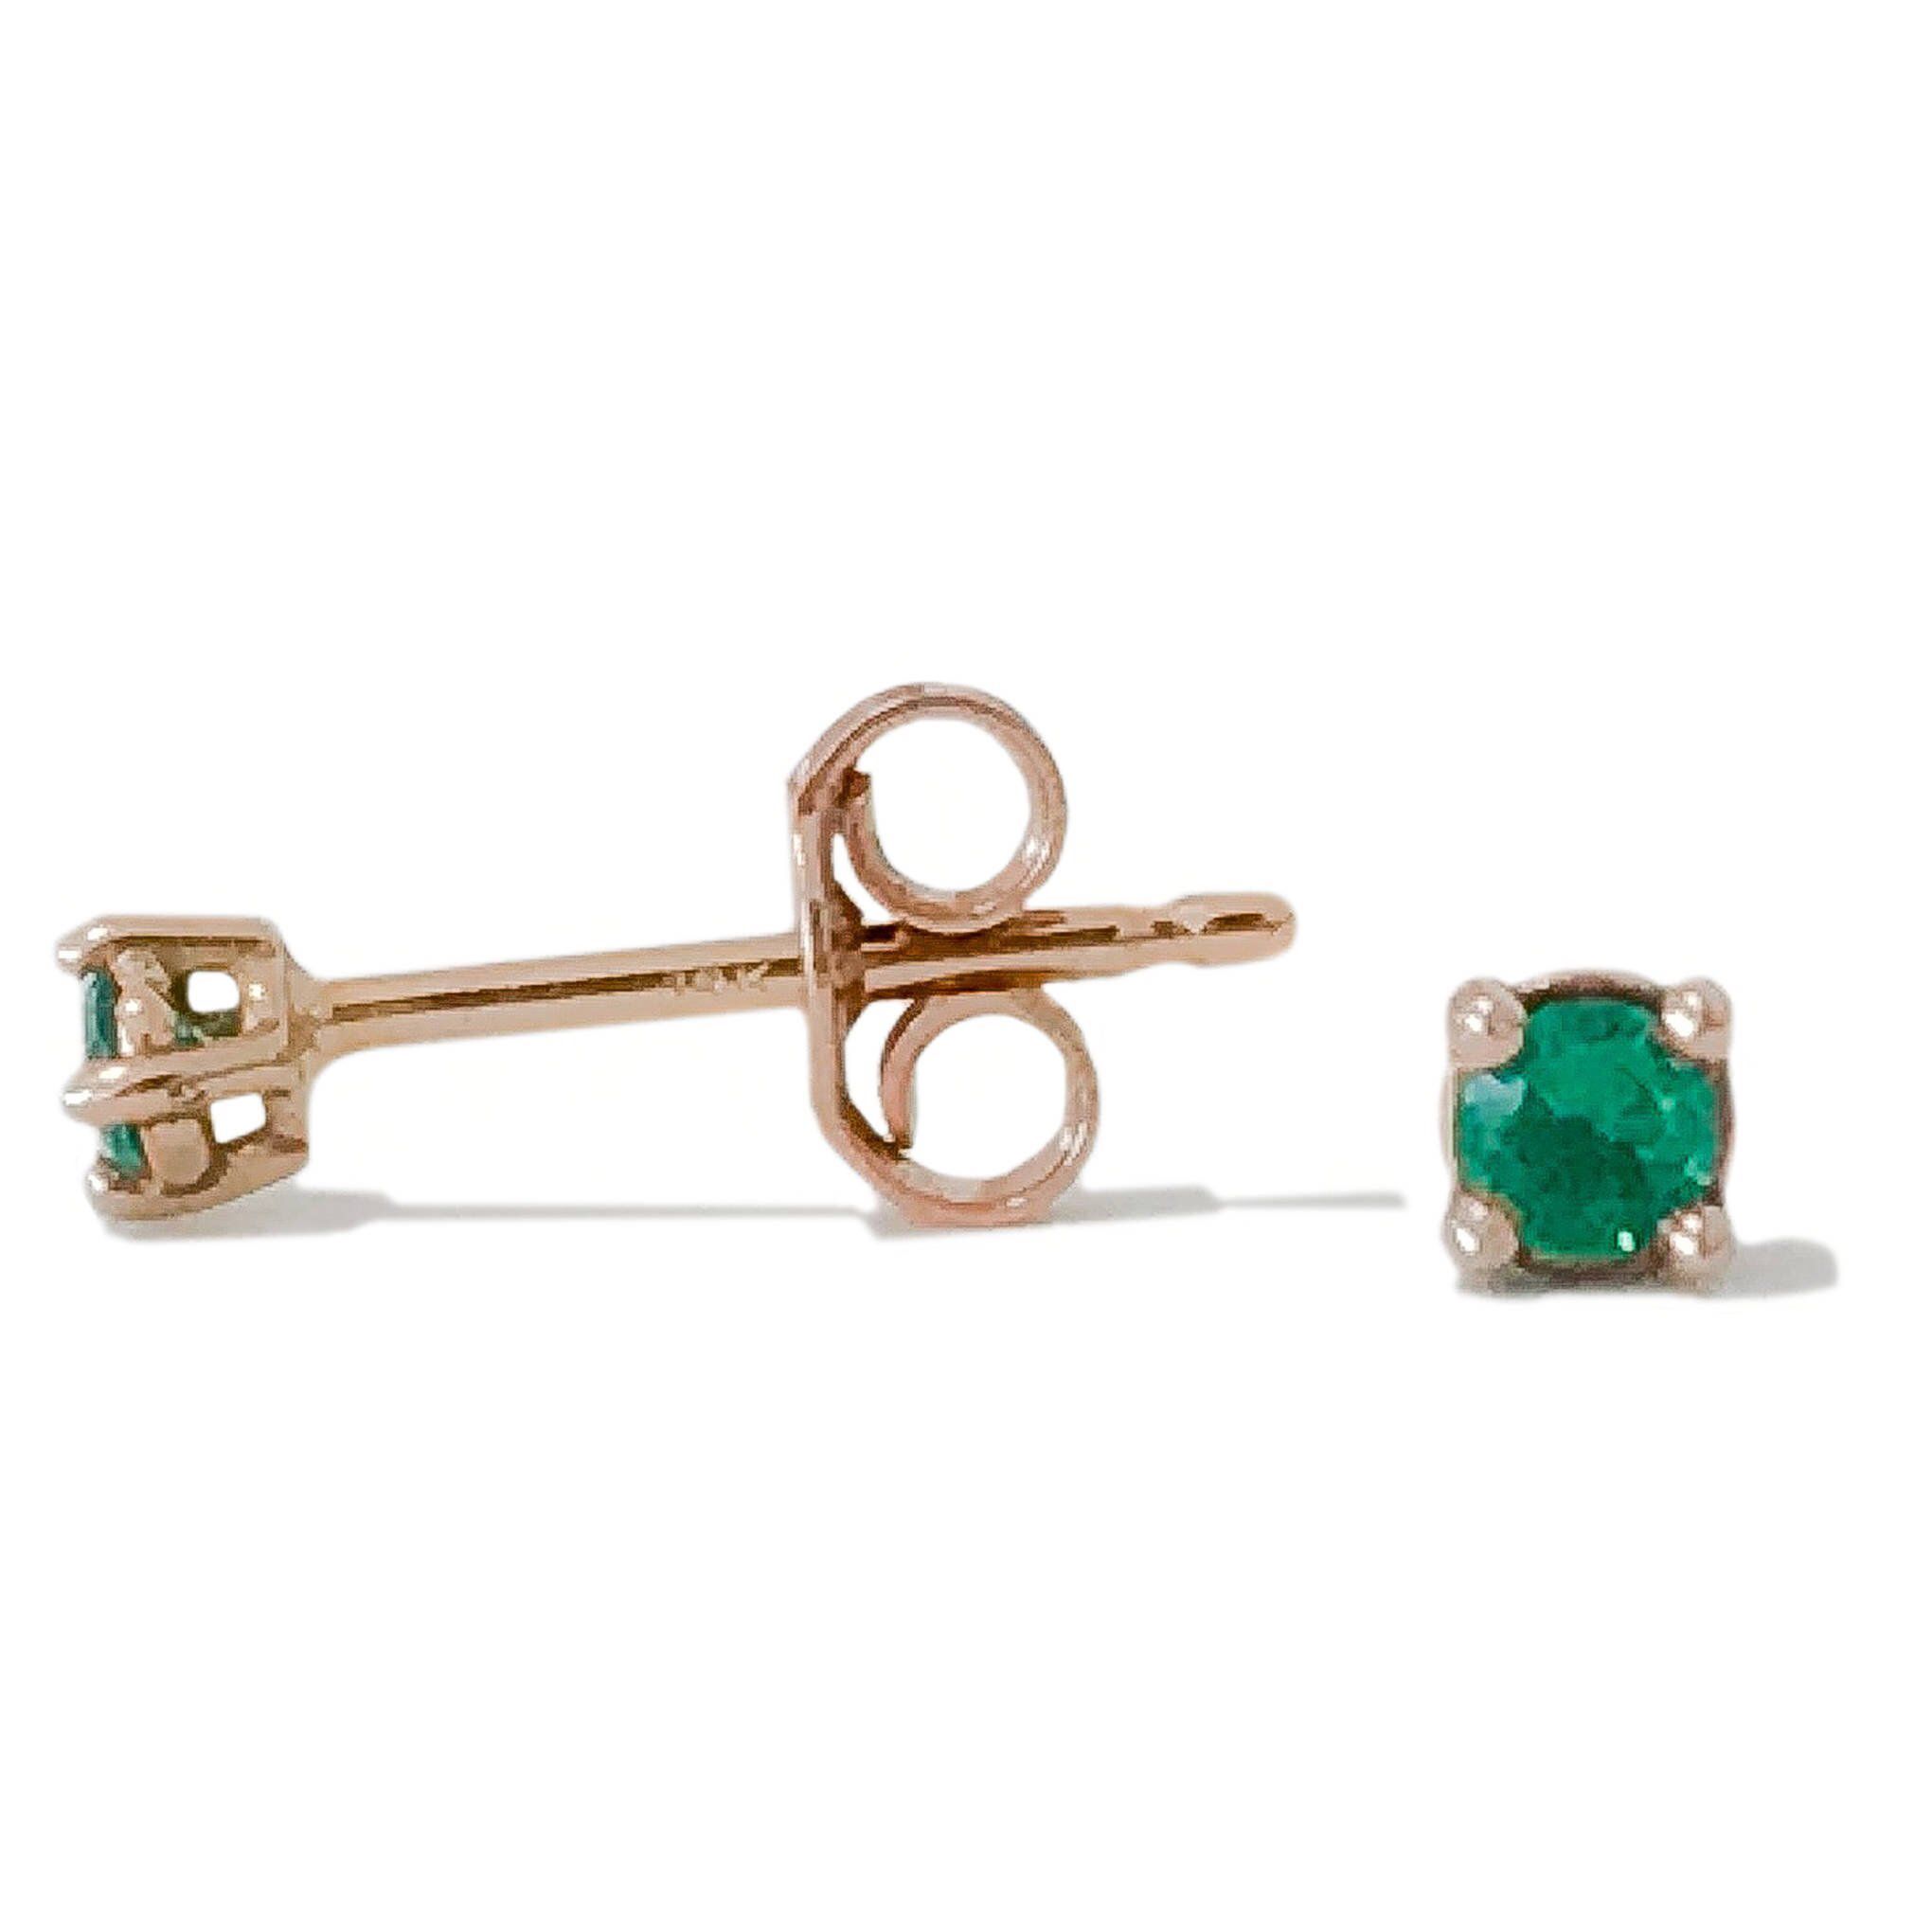 3c0f28726 2mm Emerald Solitaire 14K Solid Gold 4 Prong Stud Earring (Real Natural  Emerald Gemstones)